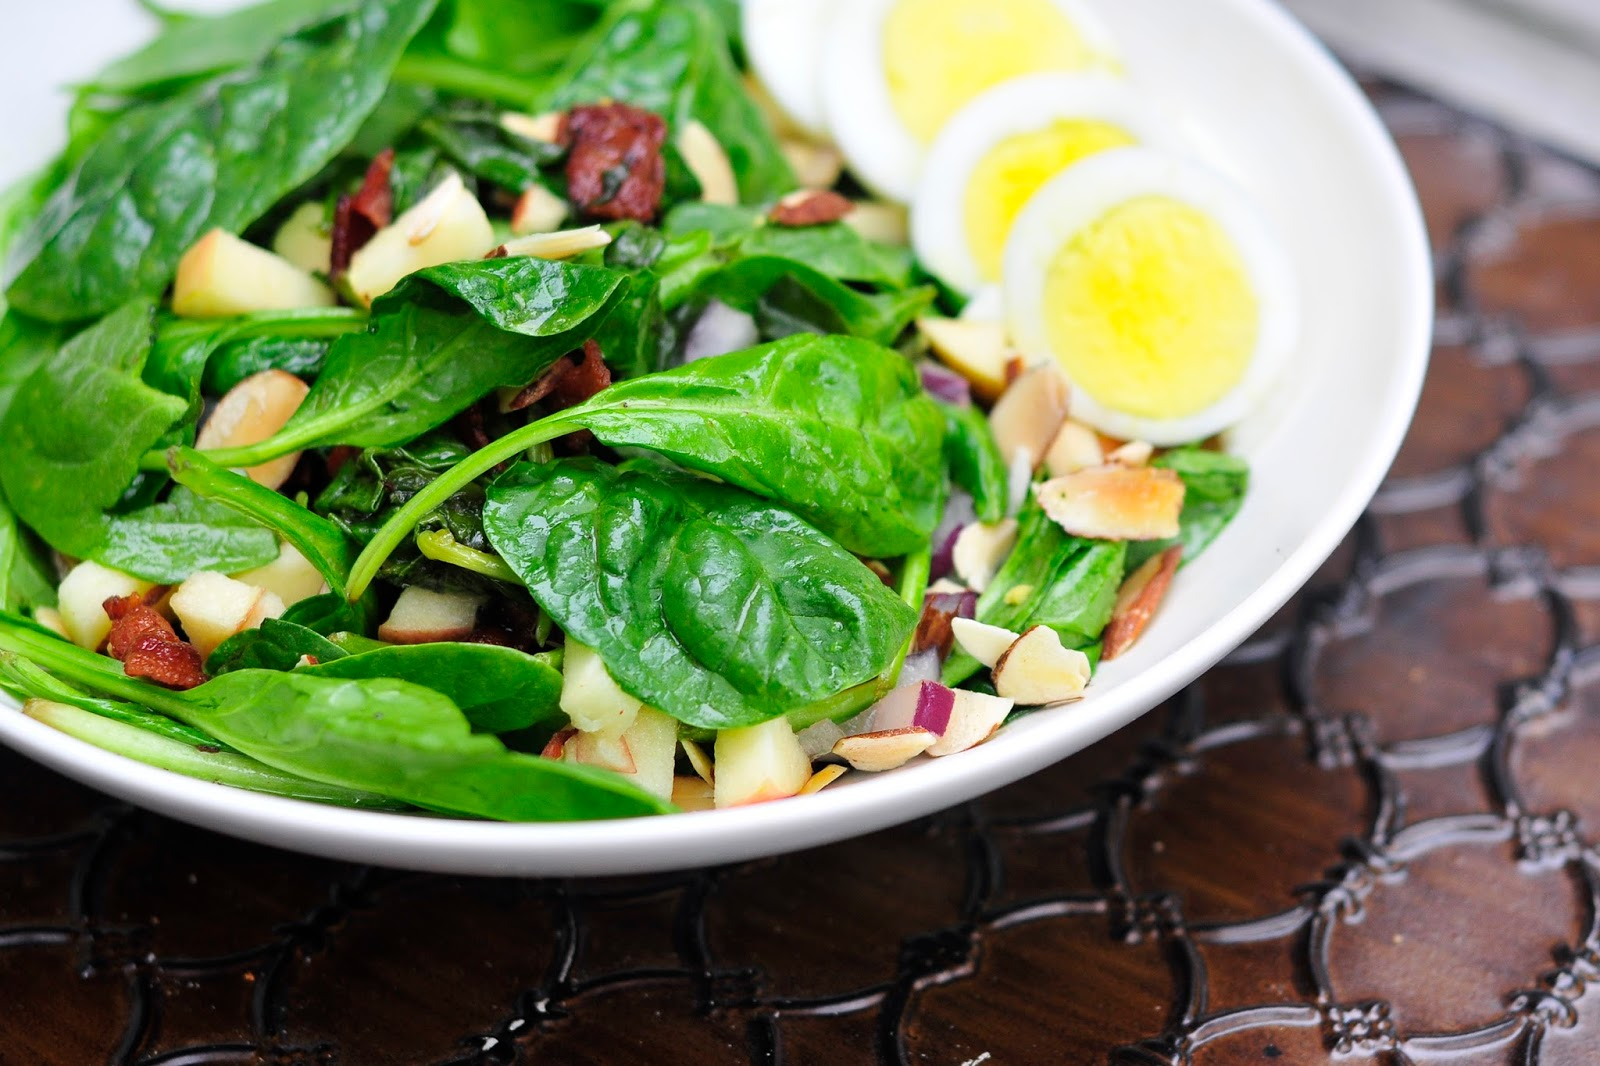 Simply Gourmet: Spinach Salad with Warm Bacon Dressing